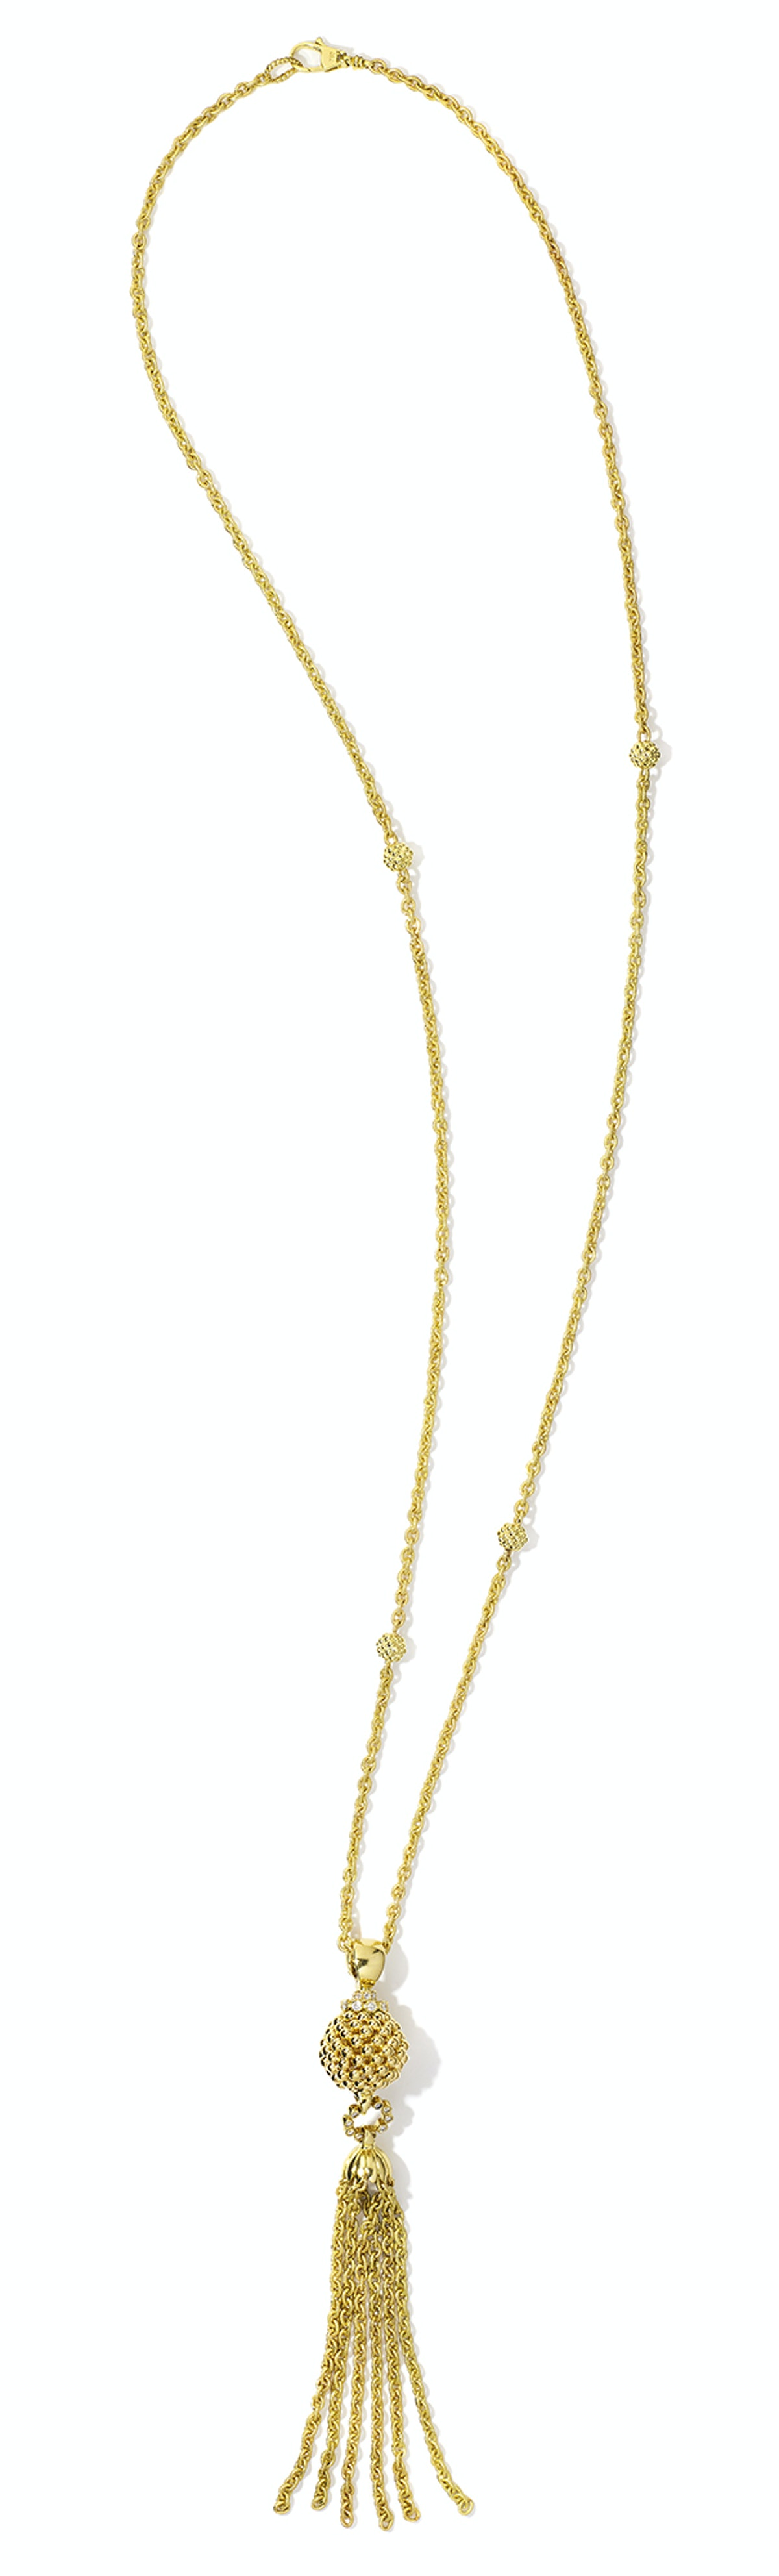 Lagos gold and diamond necklace